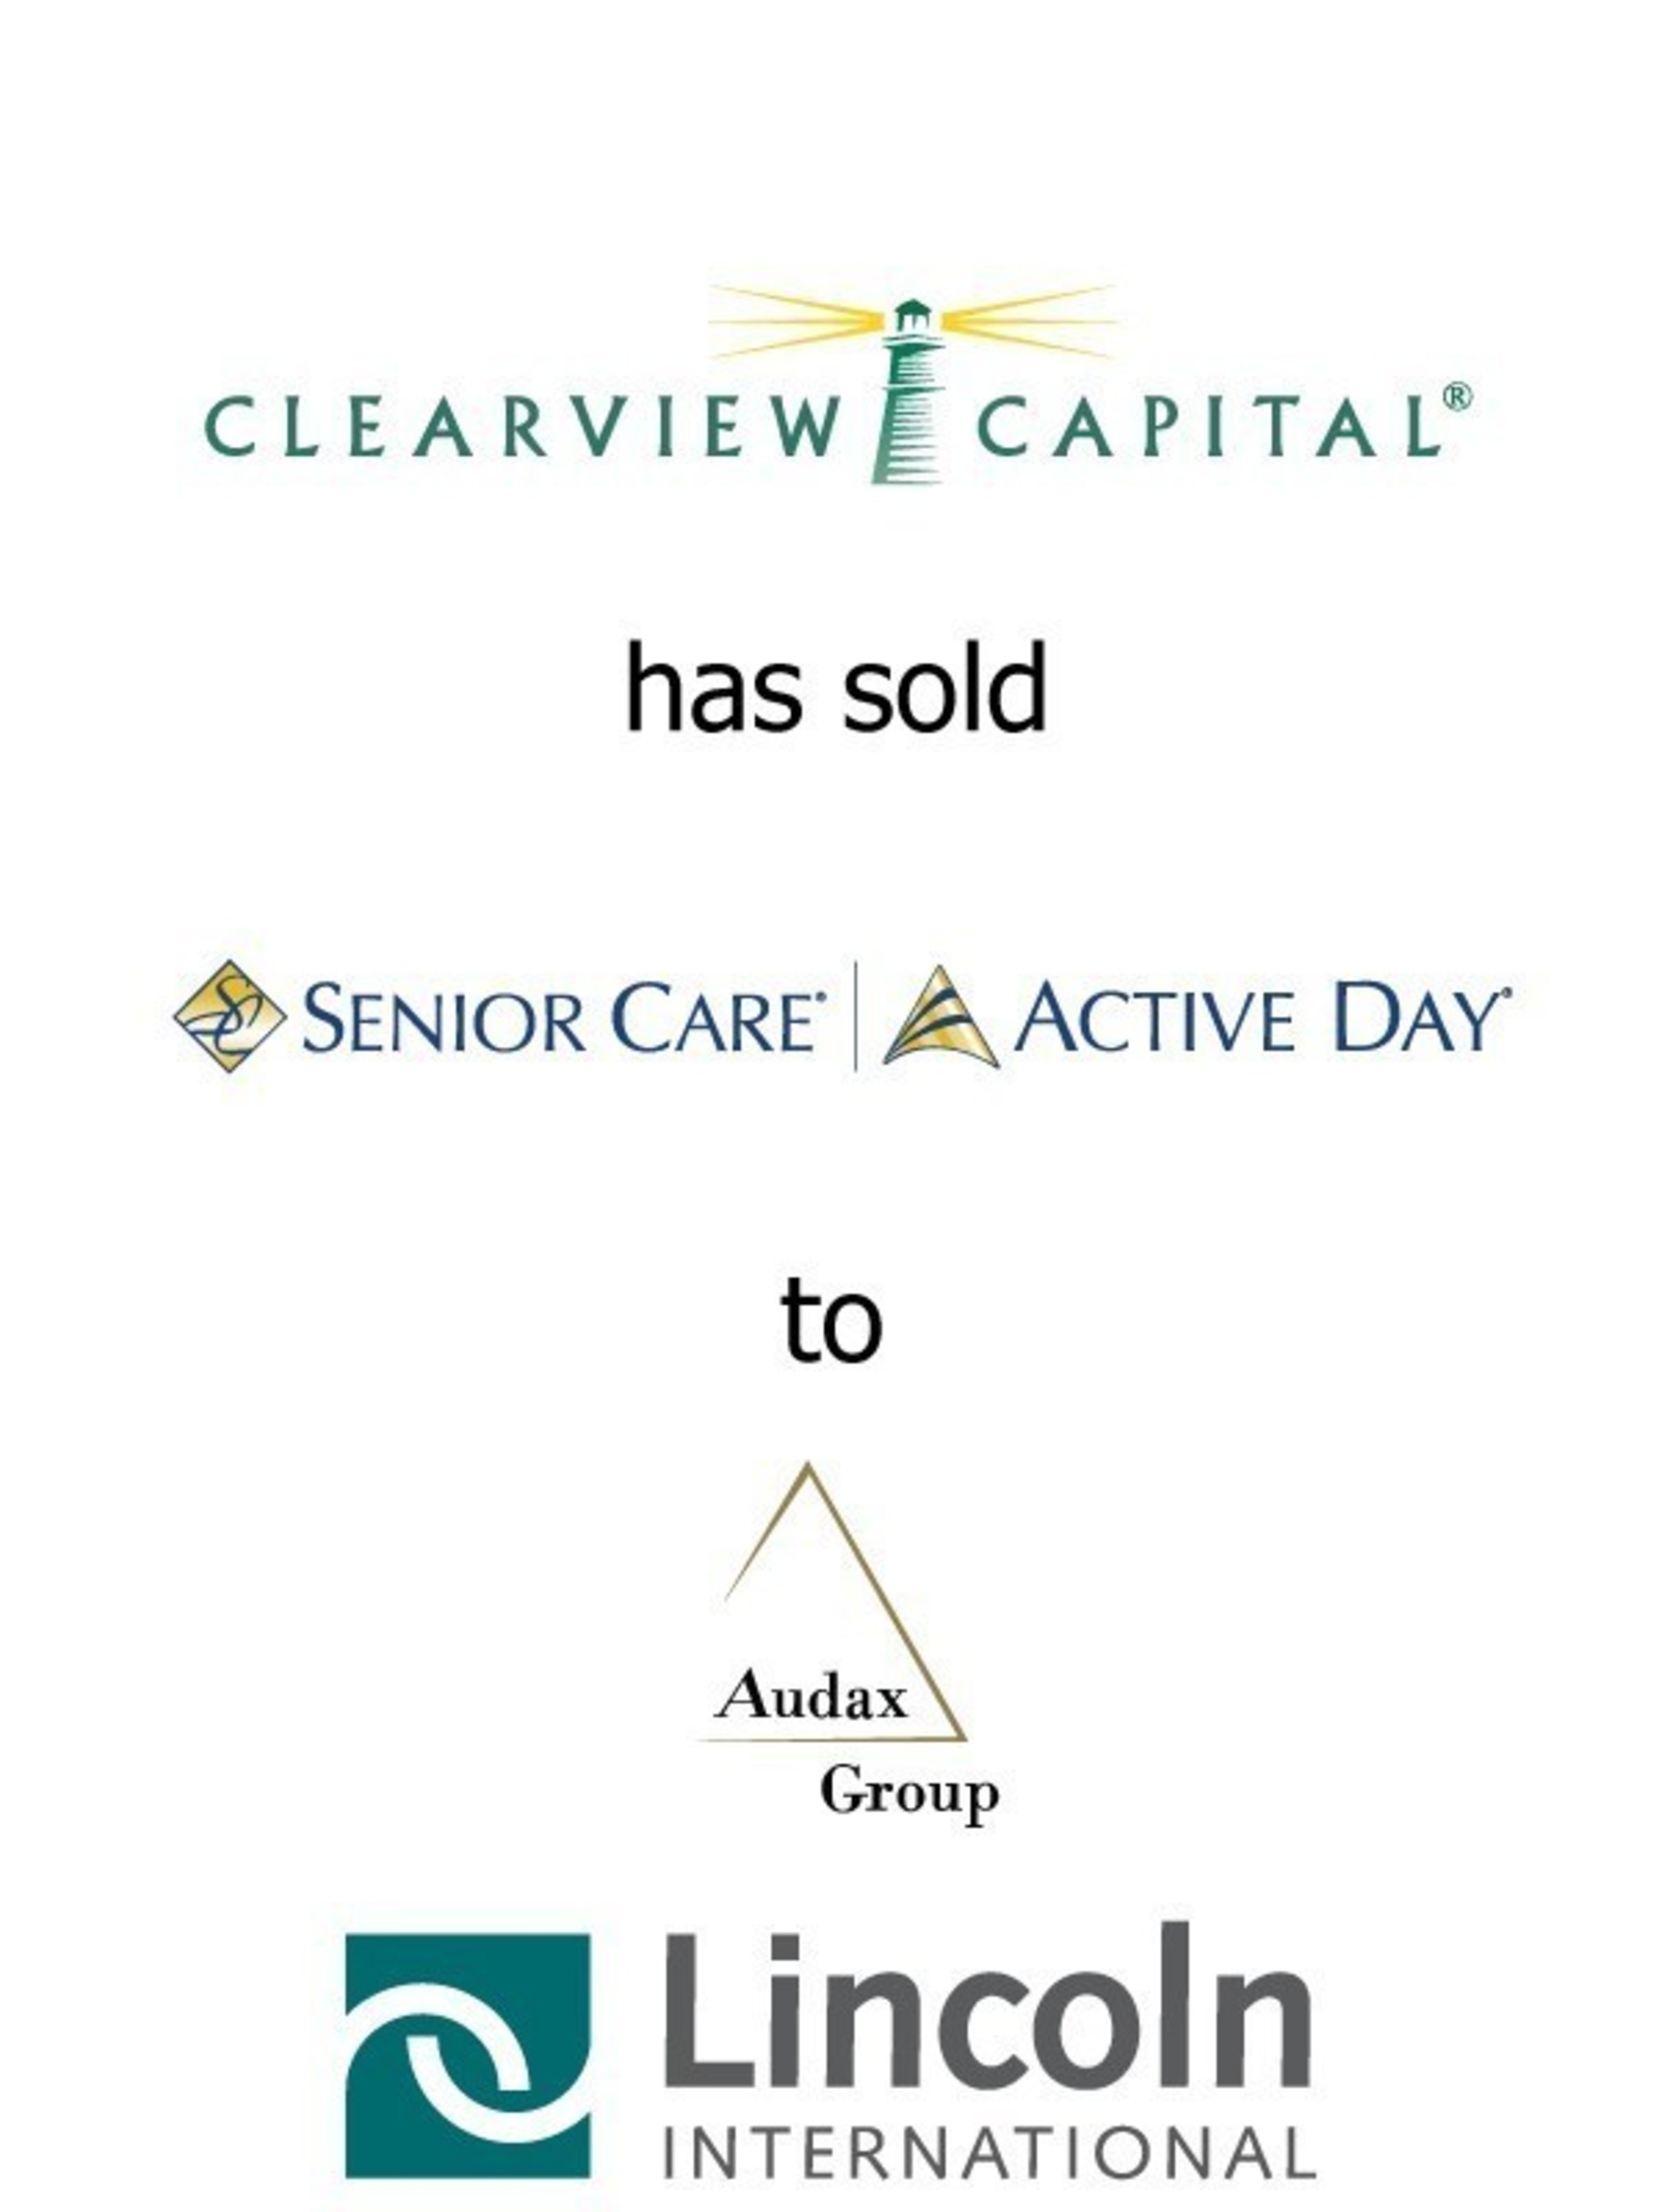 Lincoln International Represents Clearview Capital in the Sale of Senior Care / Active Day to Audax